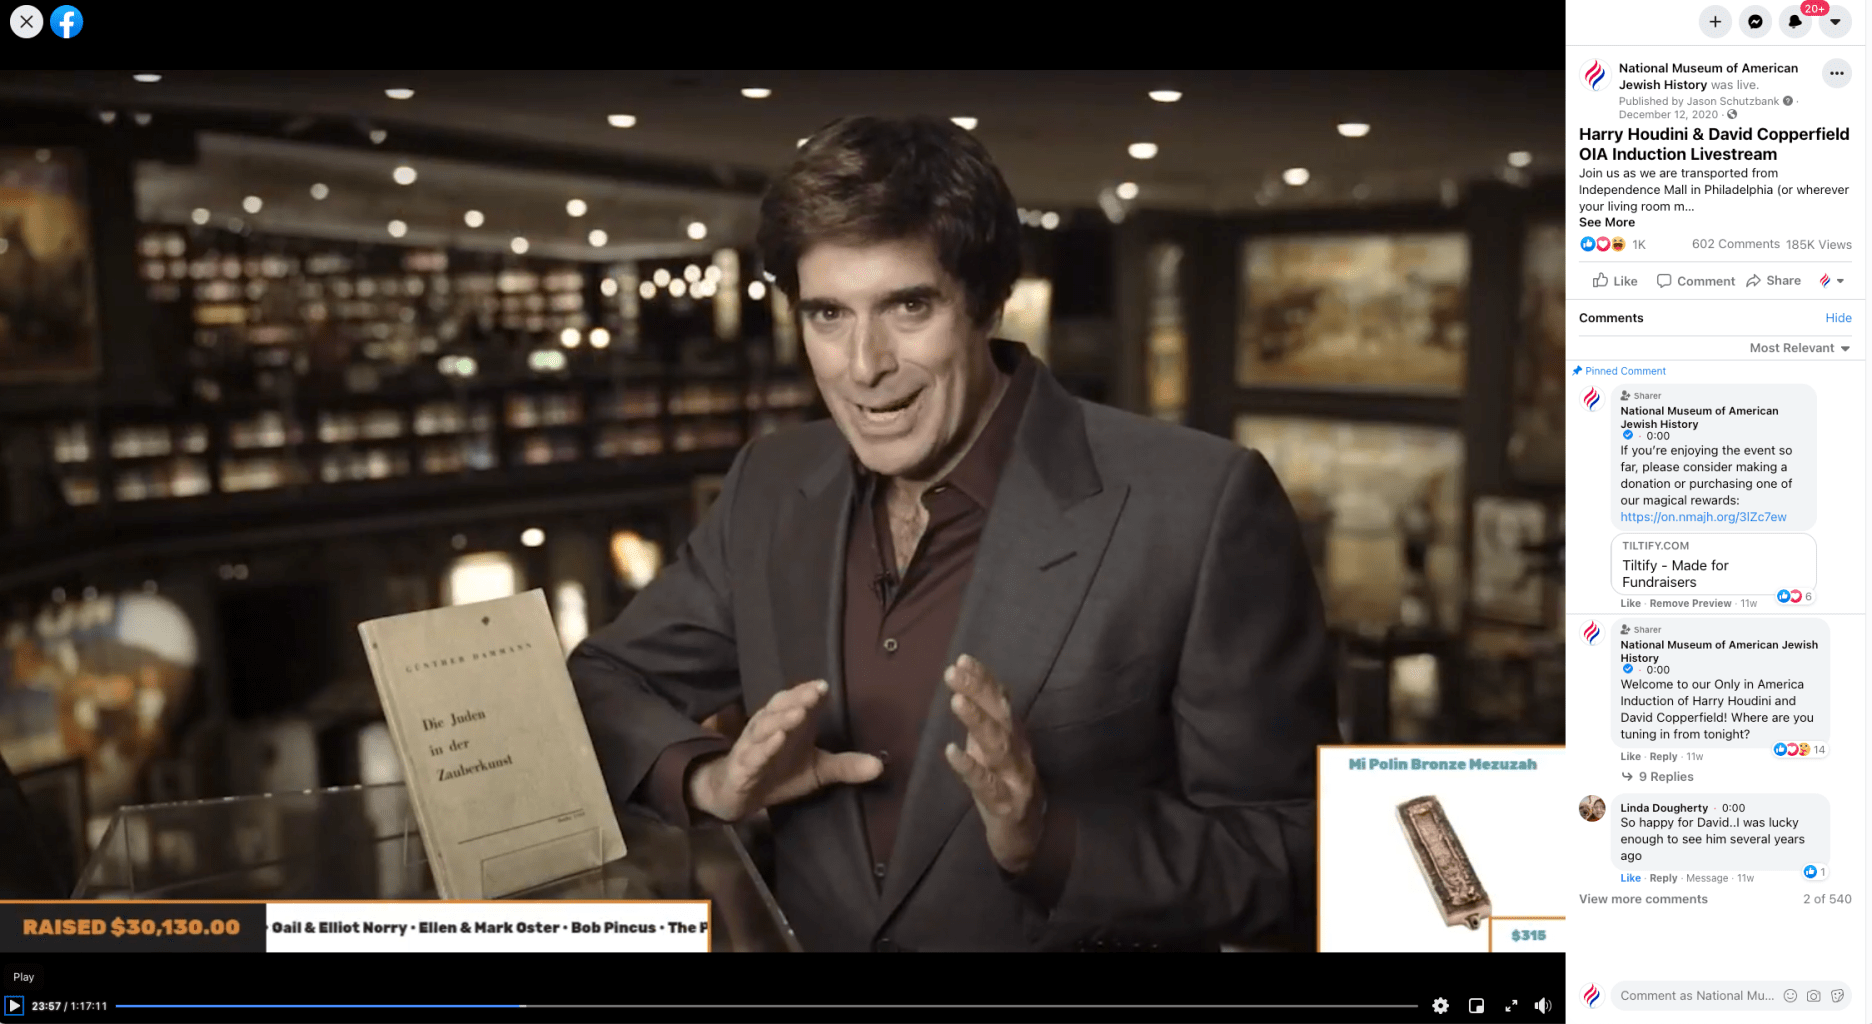 A screenshot of David Copperfield appearing at the fundraising gala via the museum's Facebook page